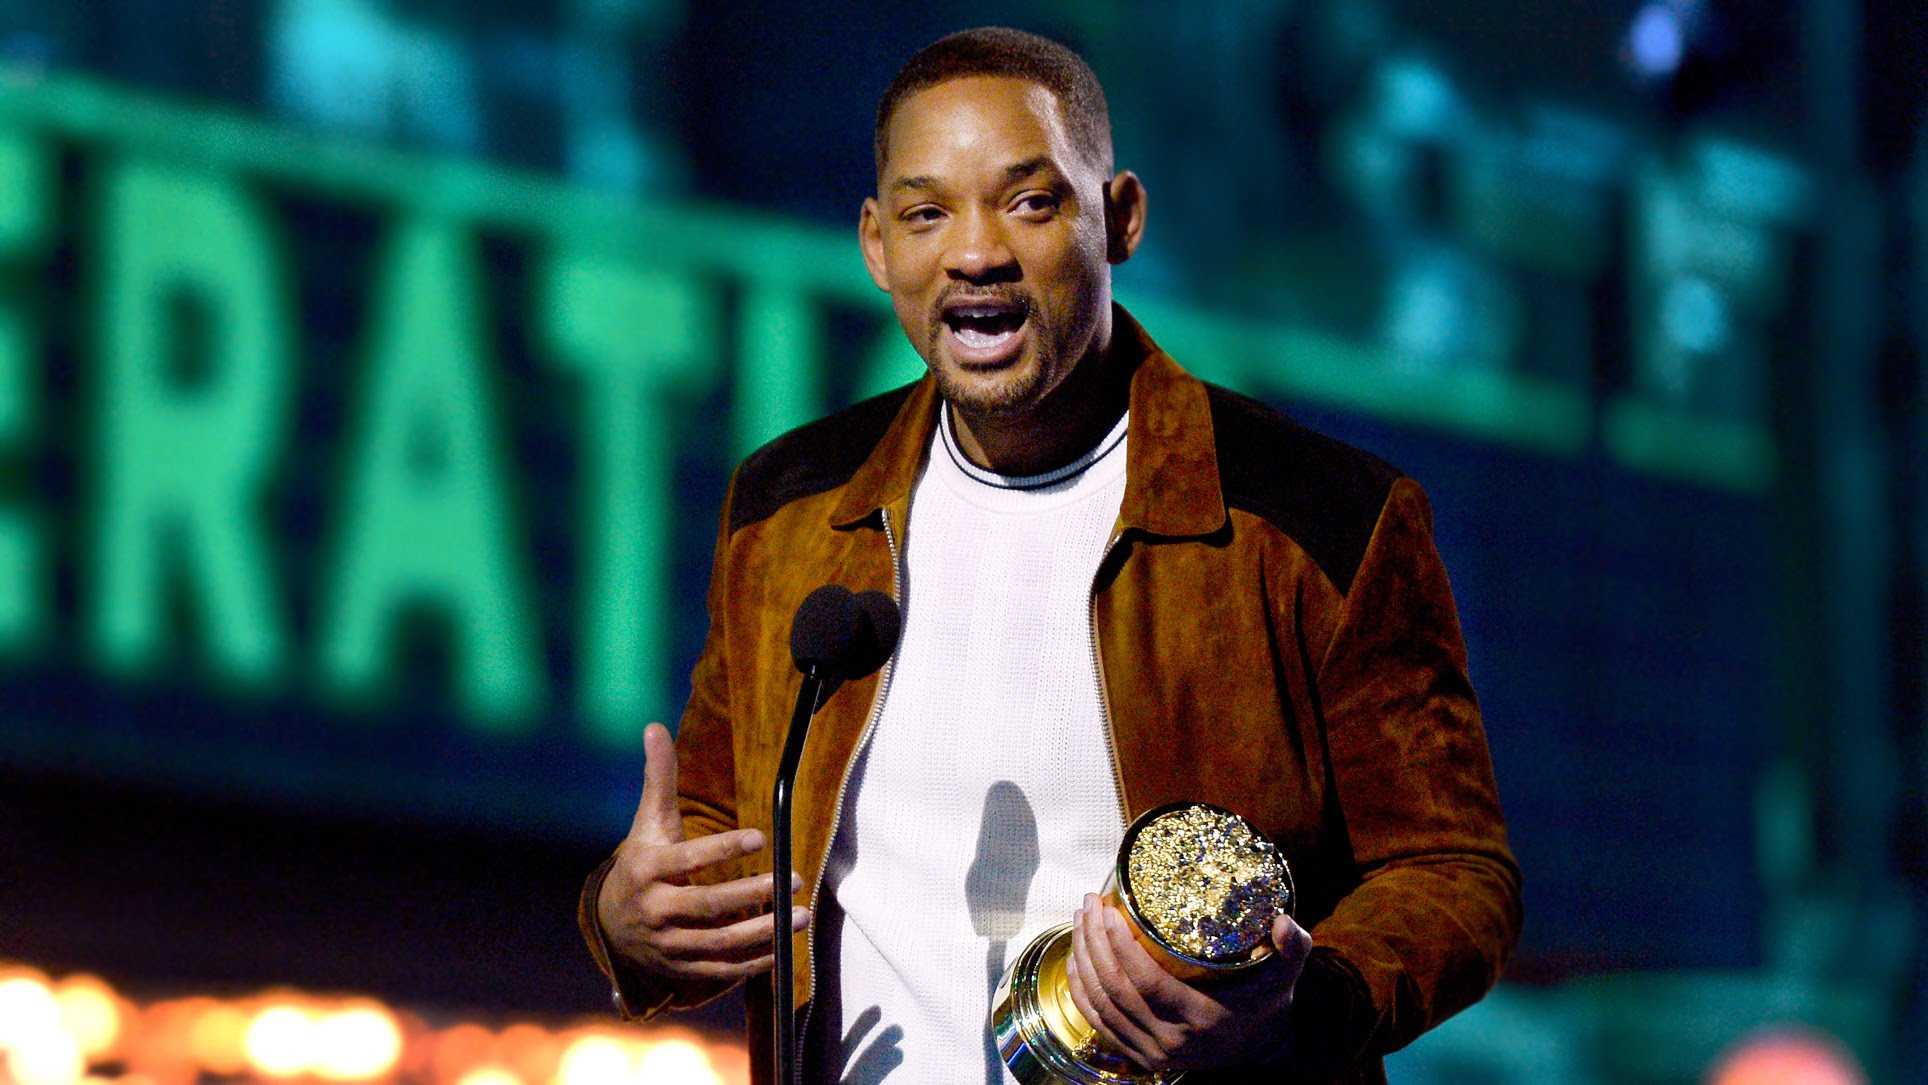 Will Smith e seu consolo pelo Oscar racista... (photo by youtube.com)